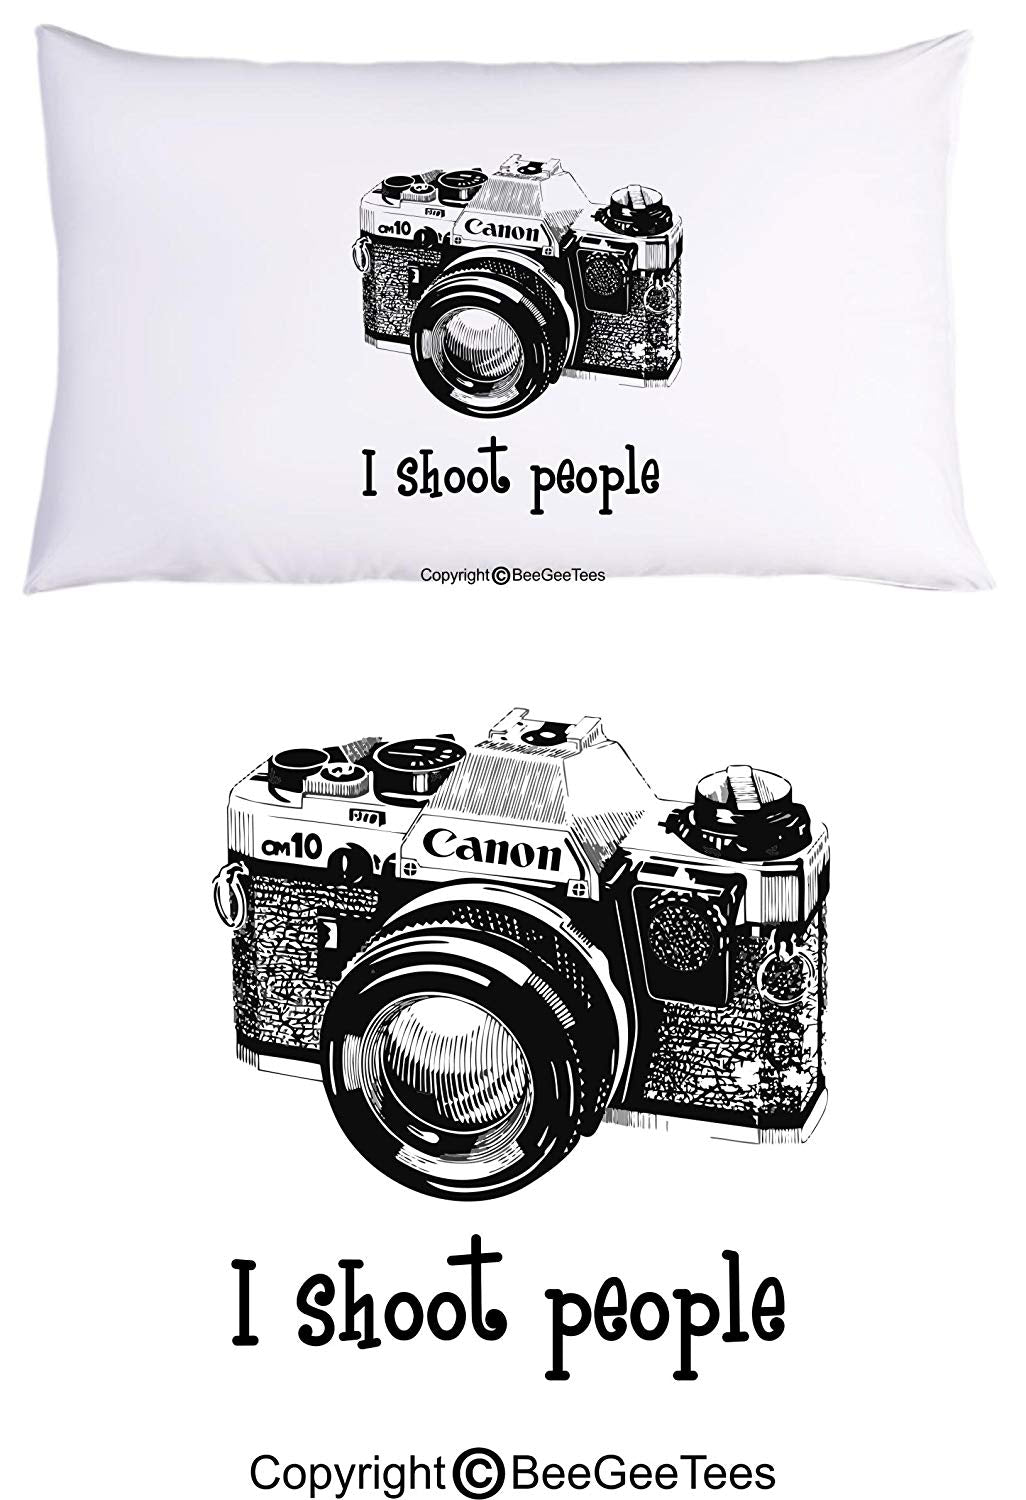 I shoot people Canon Camera Photography Funny Photographer Pillowcase by BeeGeeTees (1 Queen Pillowcase)